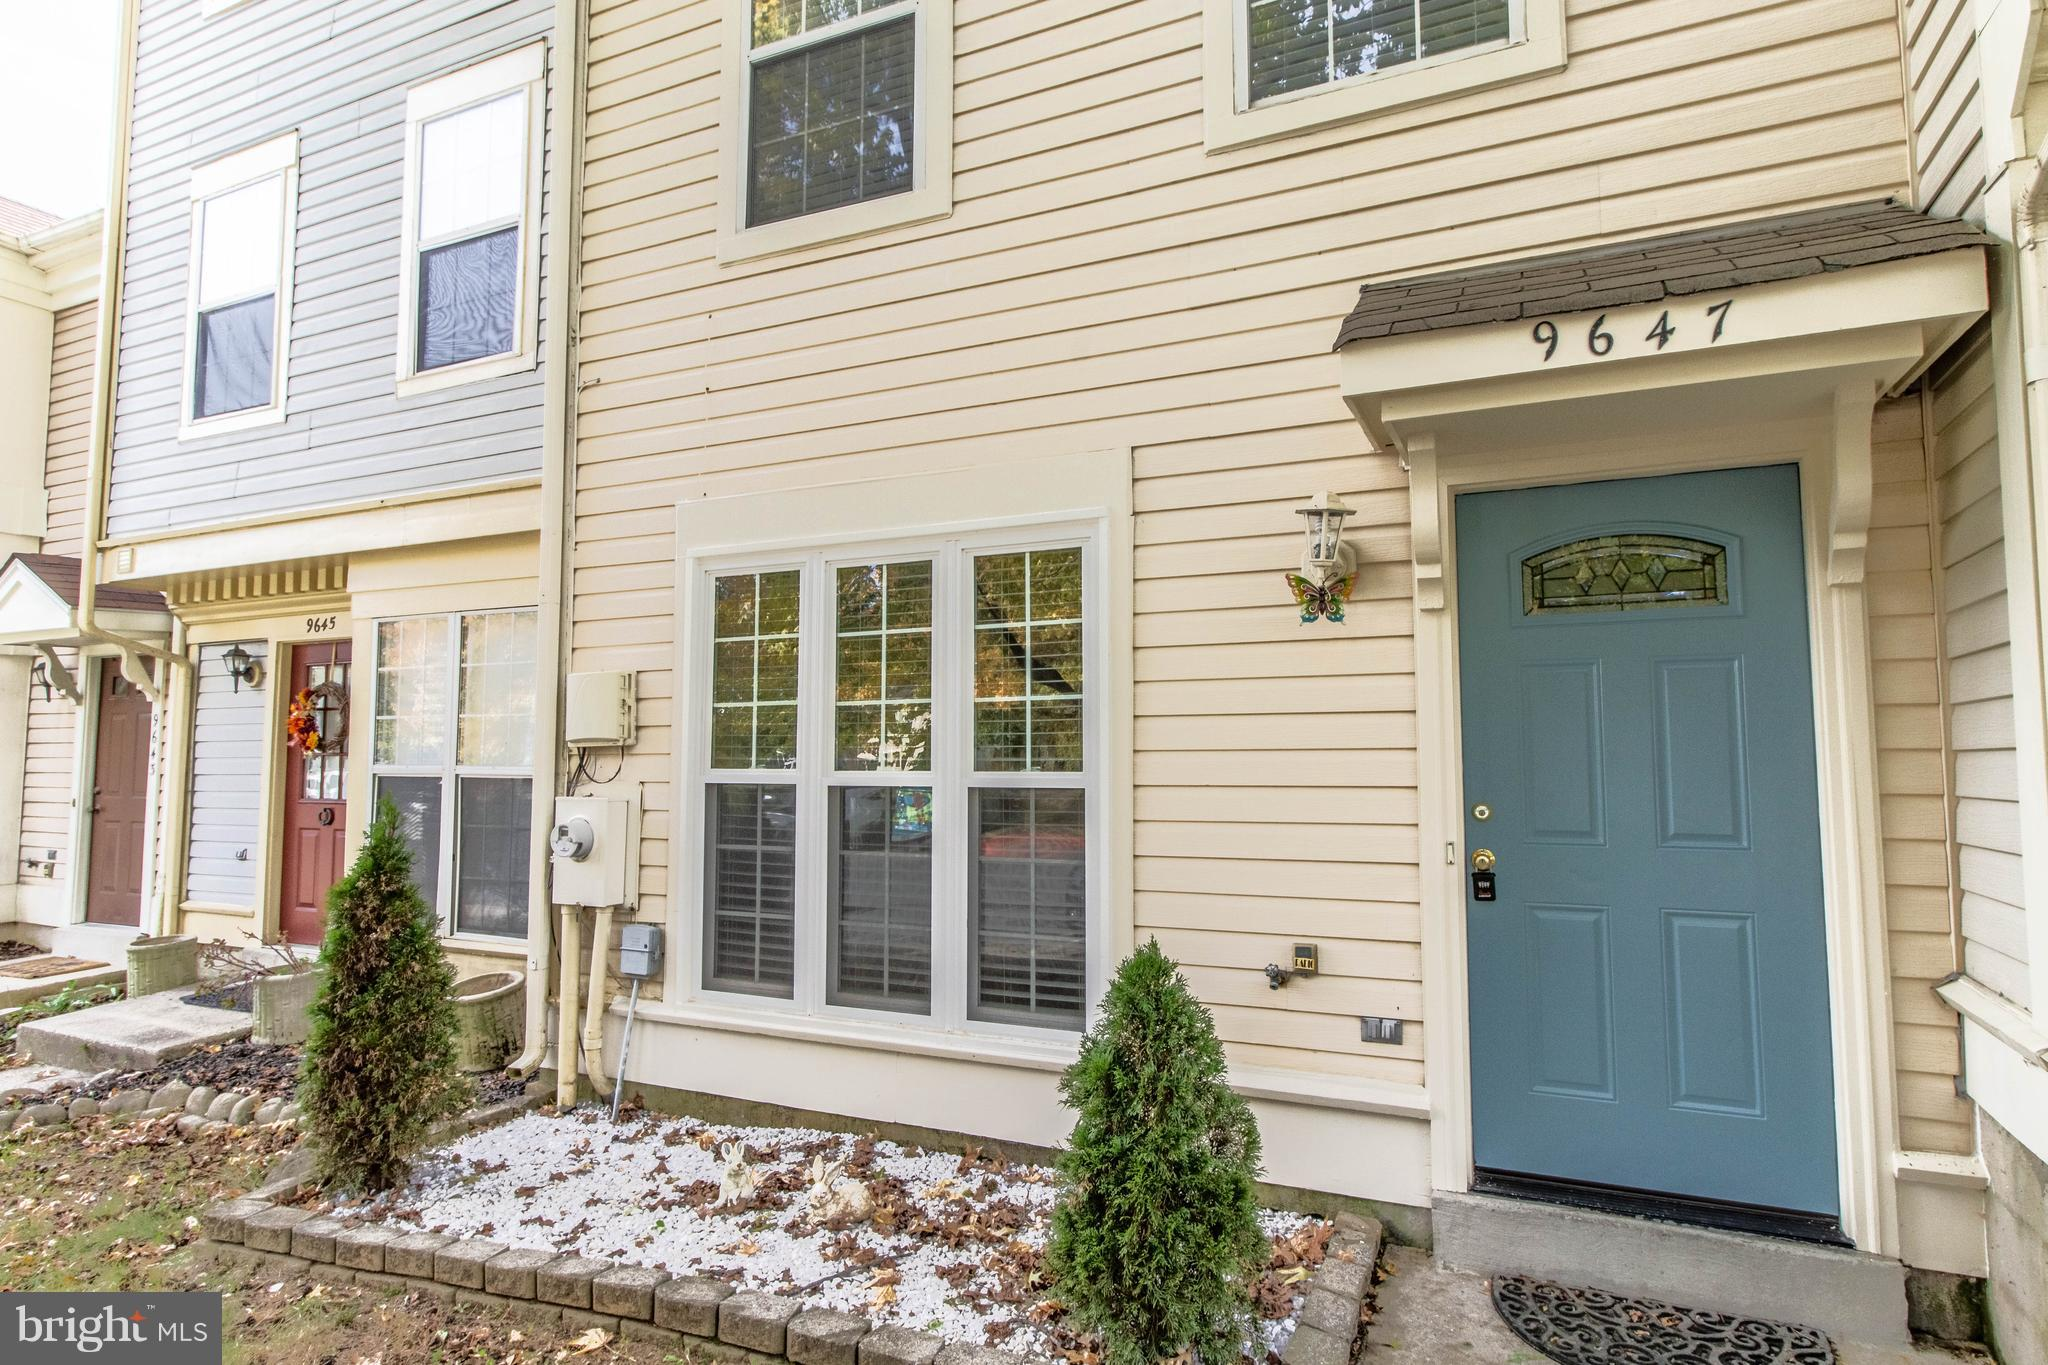 9647 STIRLING BRIDGE DRIVE, COLUMBIA, MD 21046